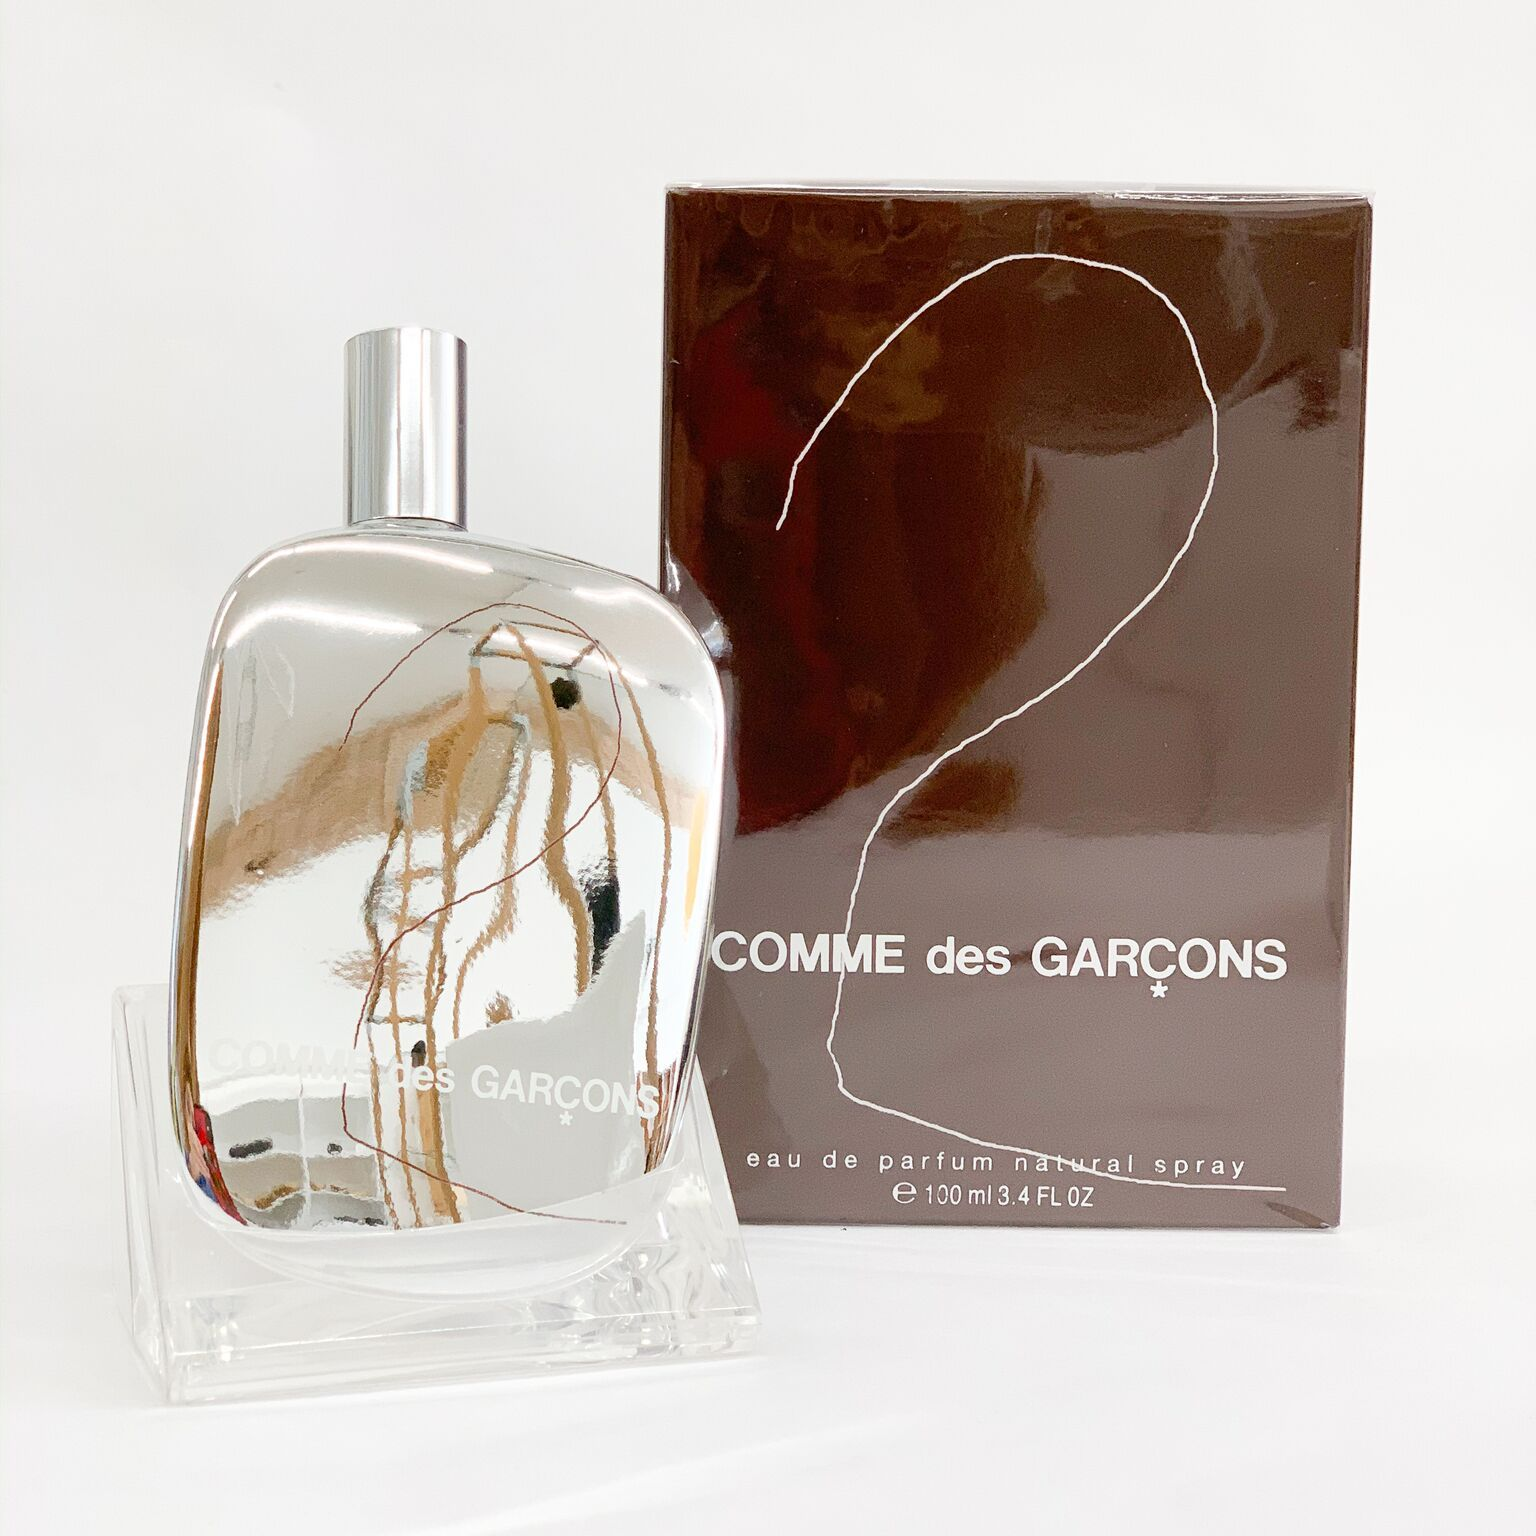 CDG Perfume - tortoise general store, comme des garcons 2 TWO